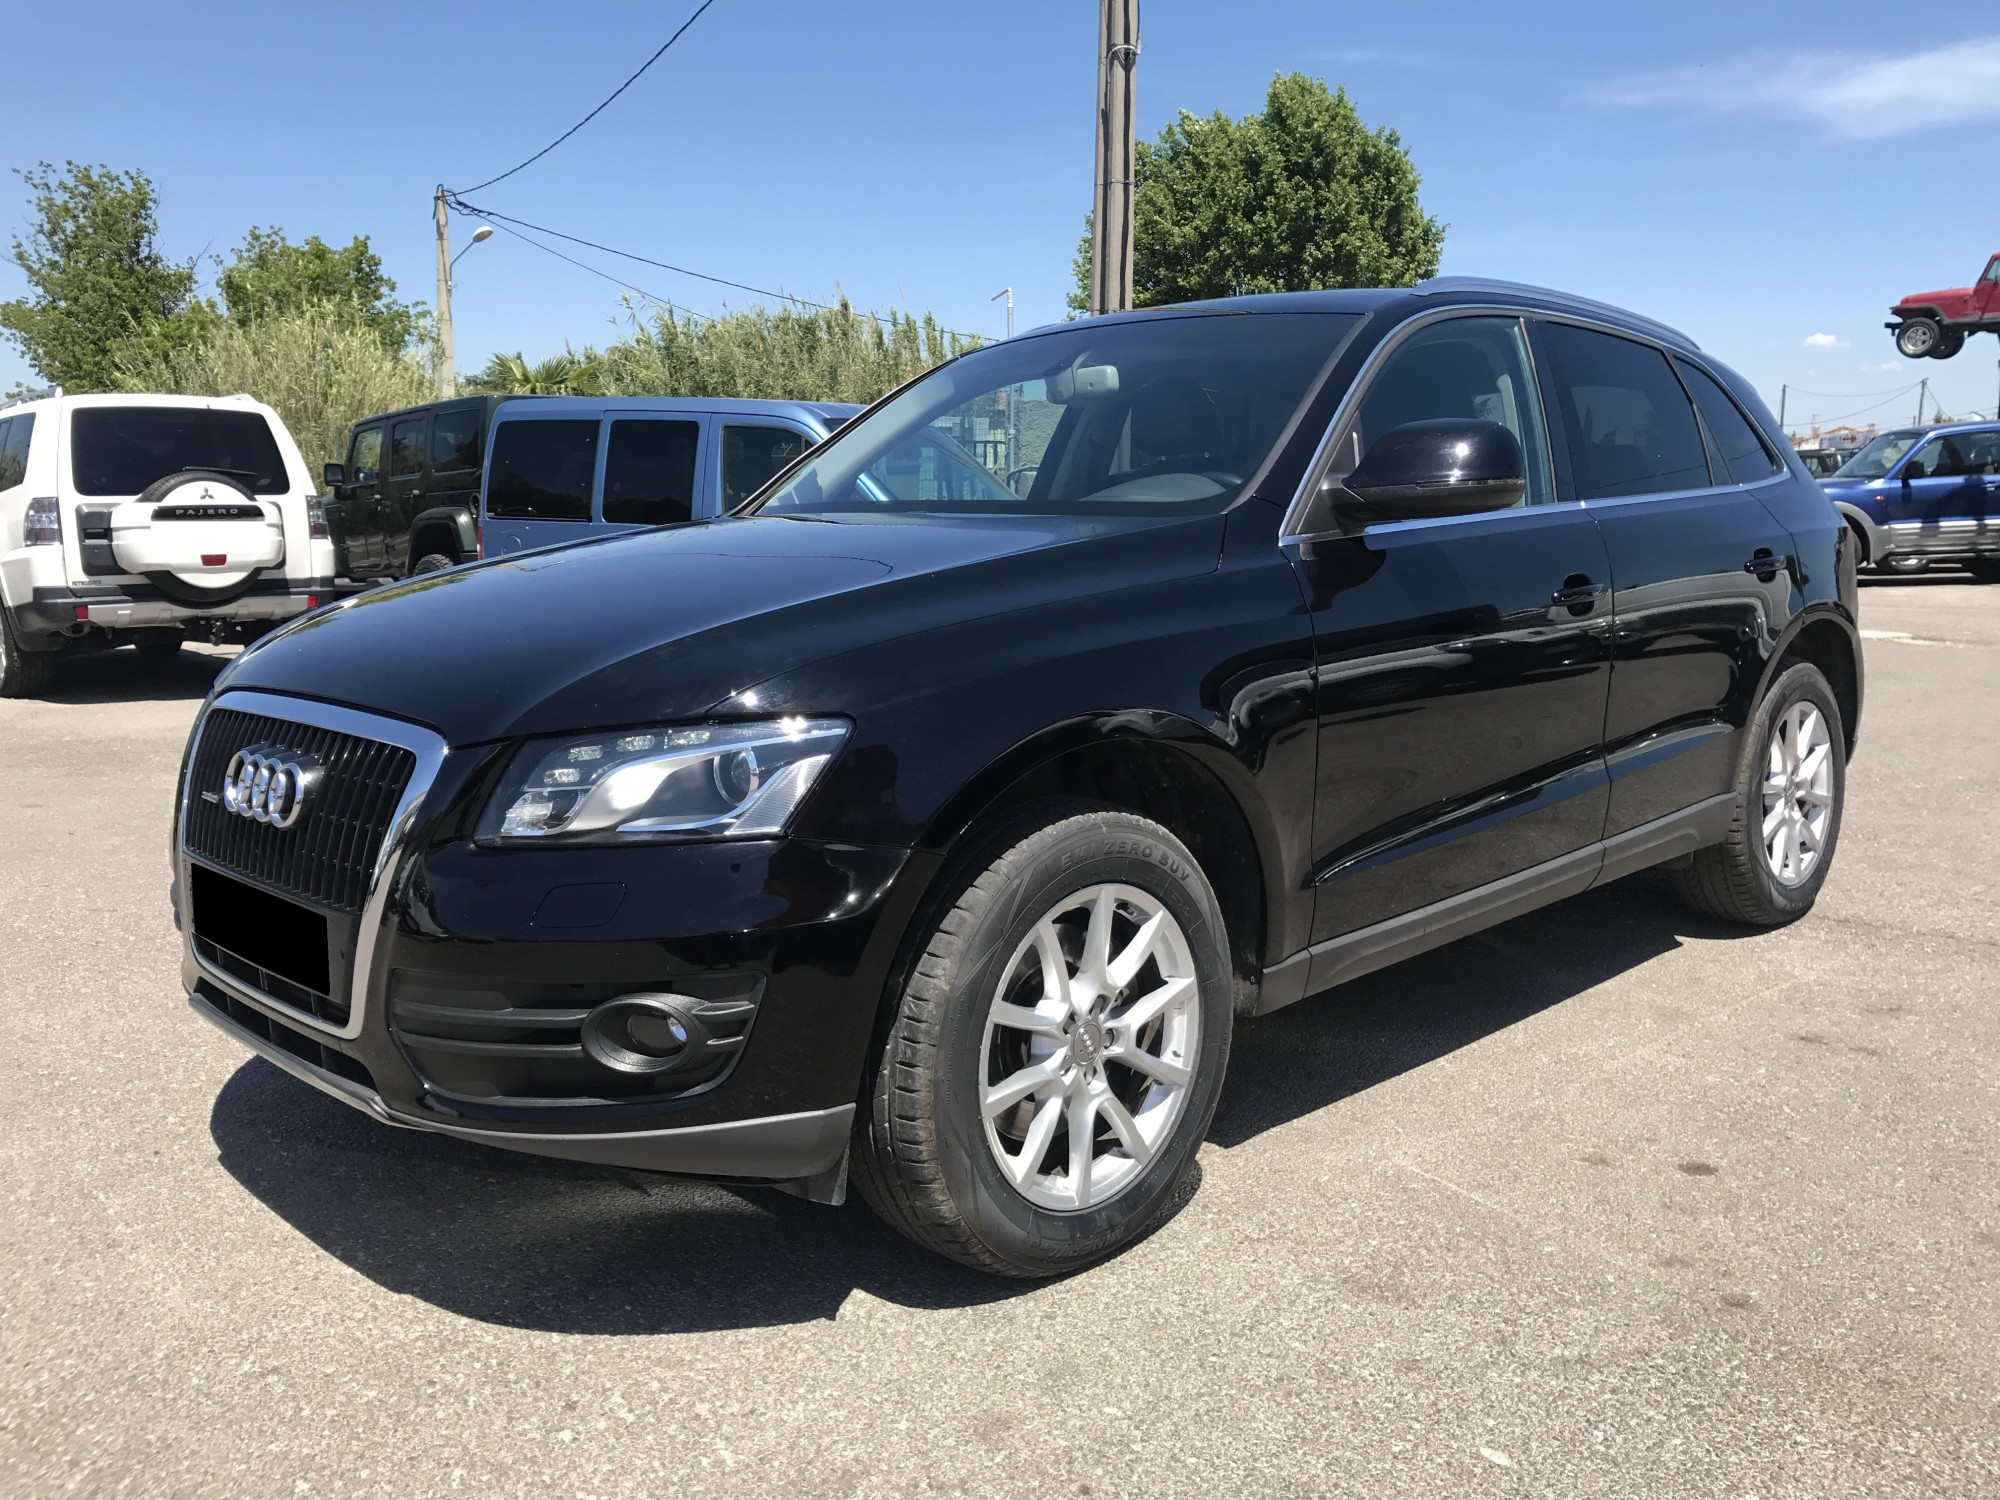 audi q5 3 0 tdi v6 240 ch ambition luxe s tronic quattro de 2010 voir dans les bouches du. Black Bedroom Furniture Sets. Home Design Ideas